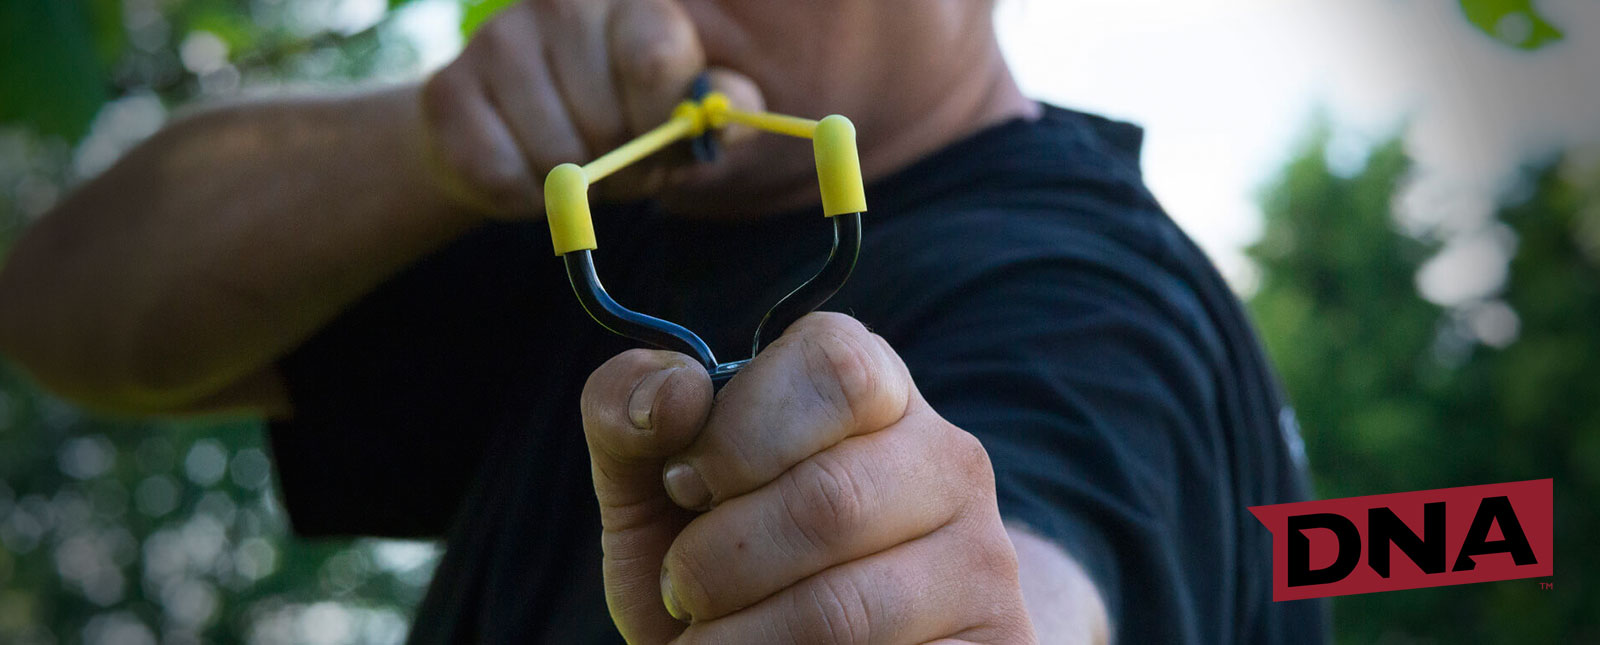 dna leisure slingshots and ammo